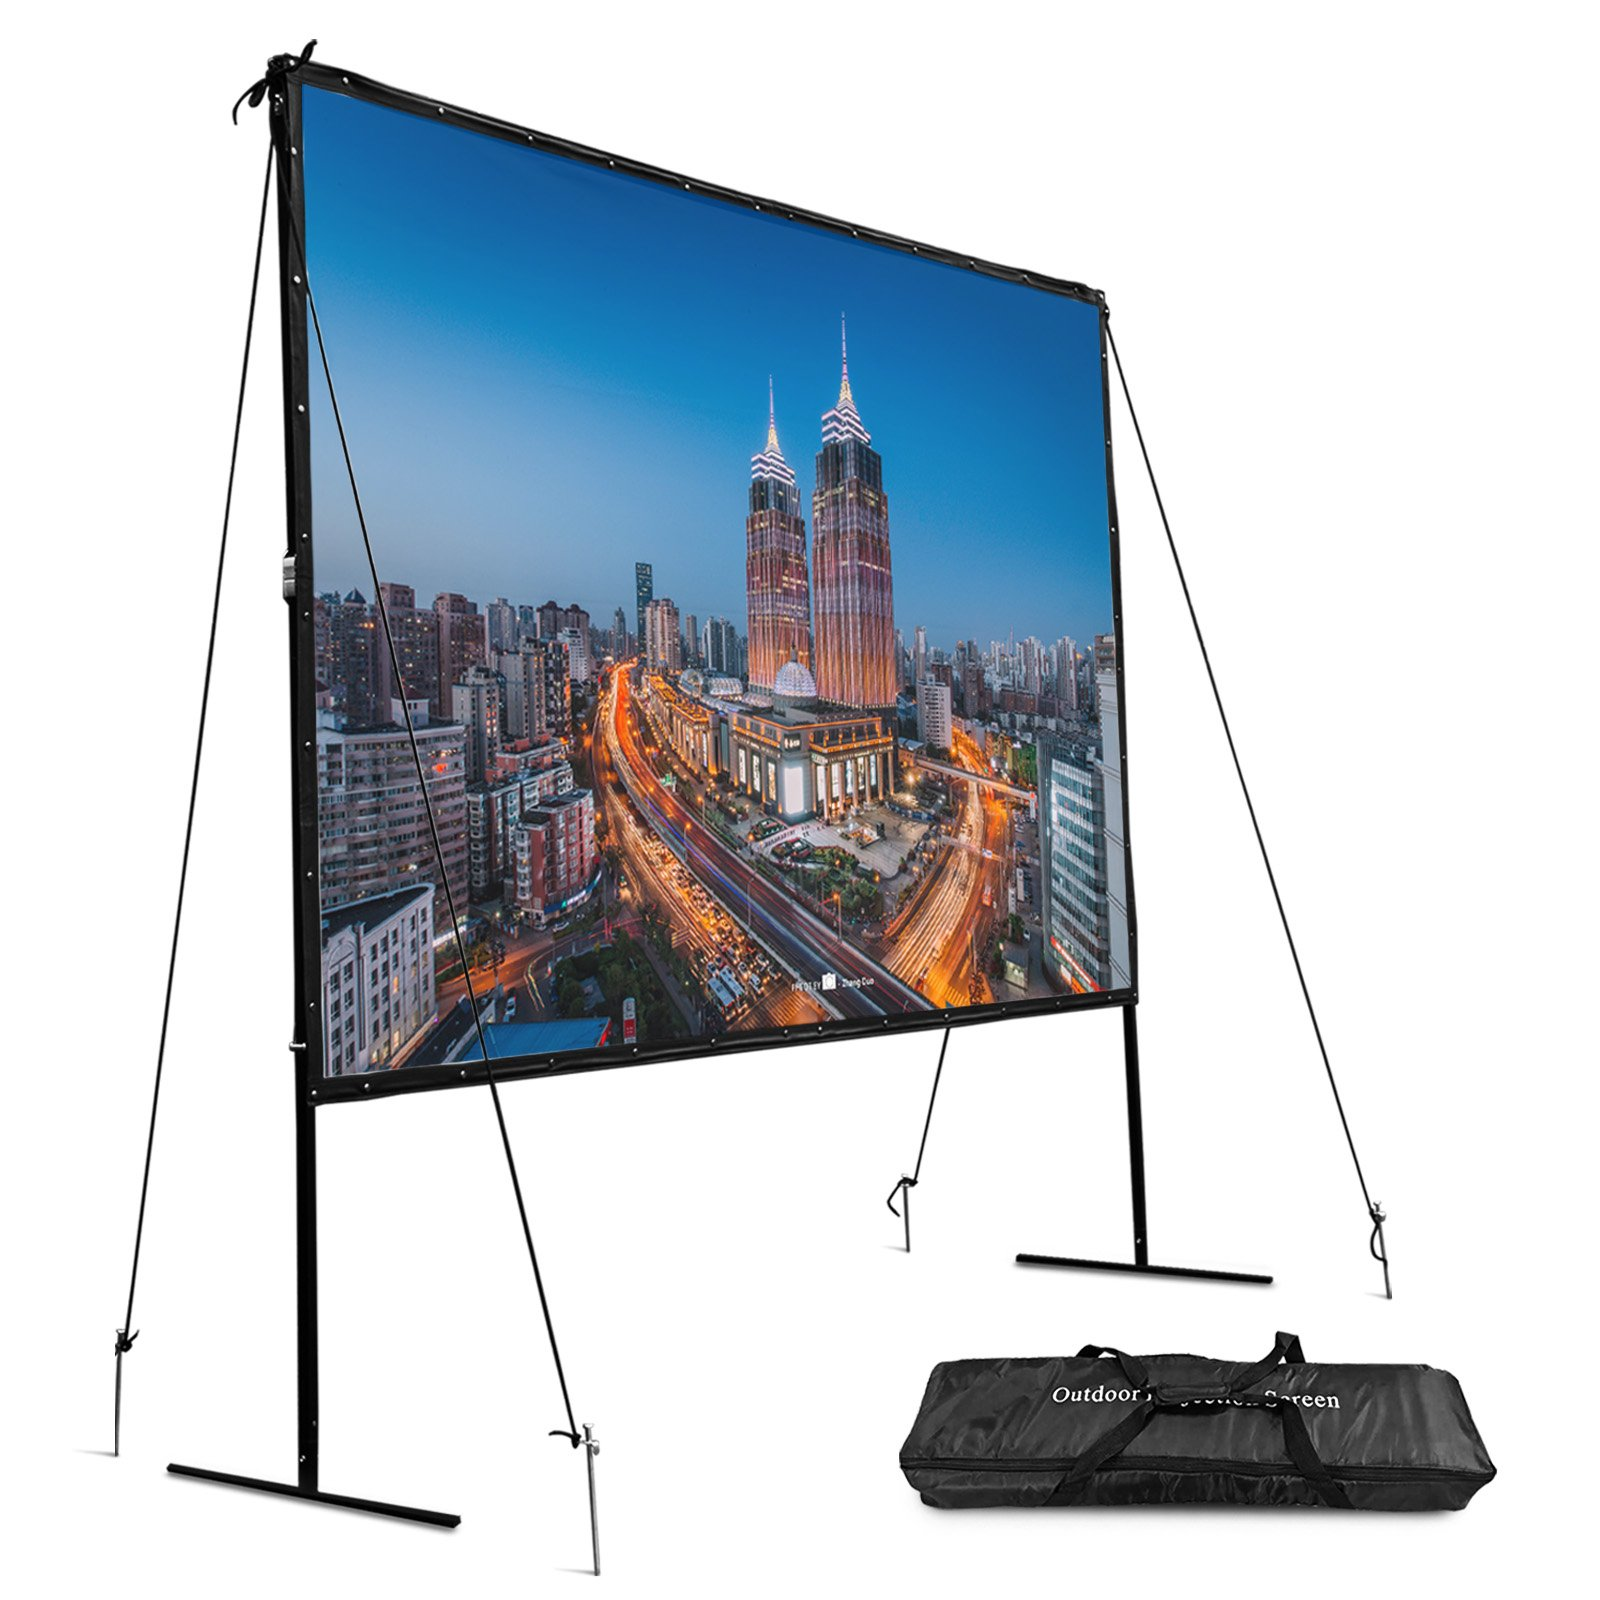 VEVOR Portable Projection Screen 144 Inch 16:9 Indoor and Outdoor Movie Screen with Stand Projector Screen with Carring Bag by VEVOR